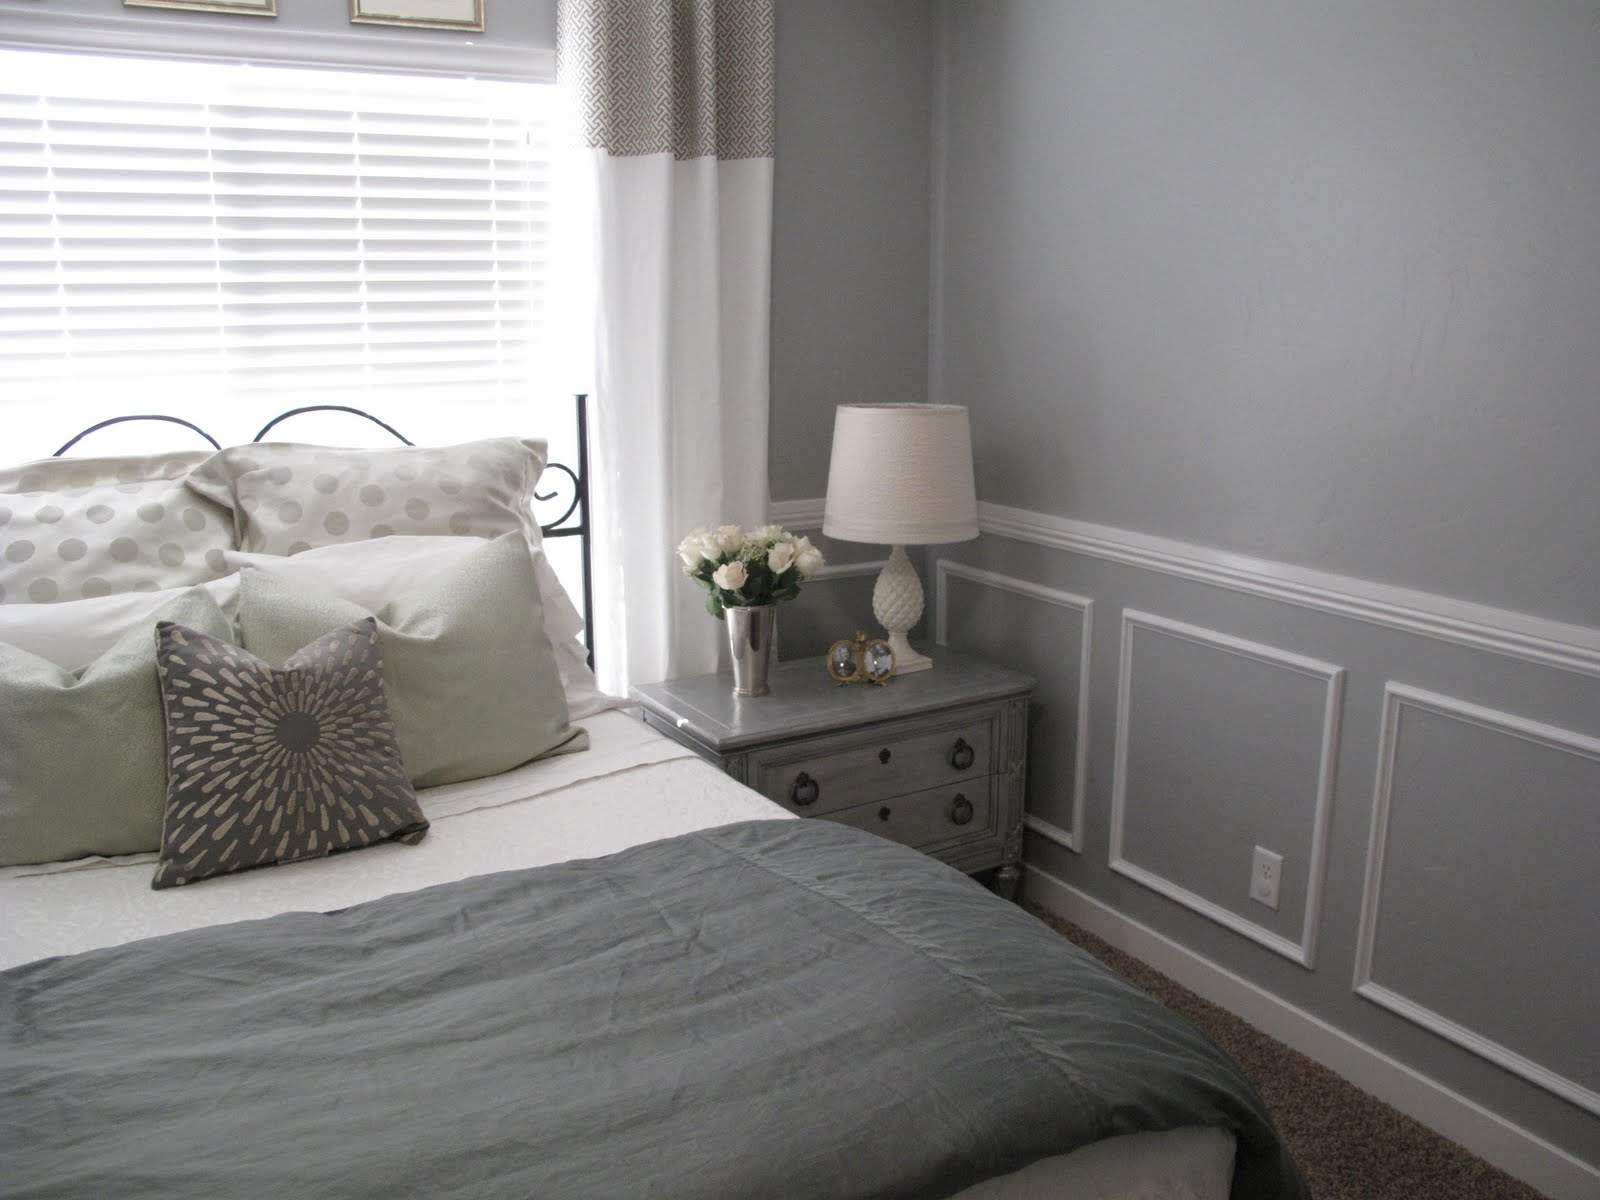 Master bedroom makeover tatertots and jello Master bedroom makeover pinterest